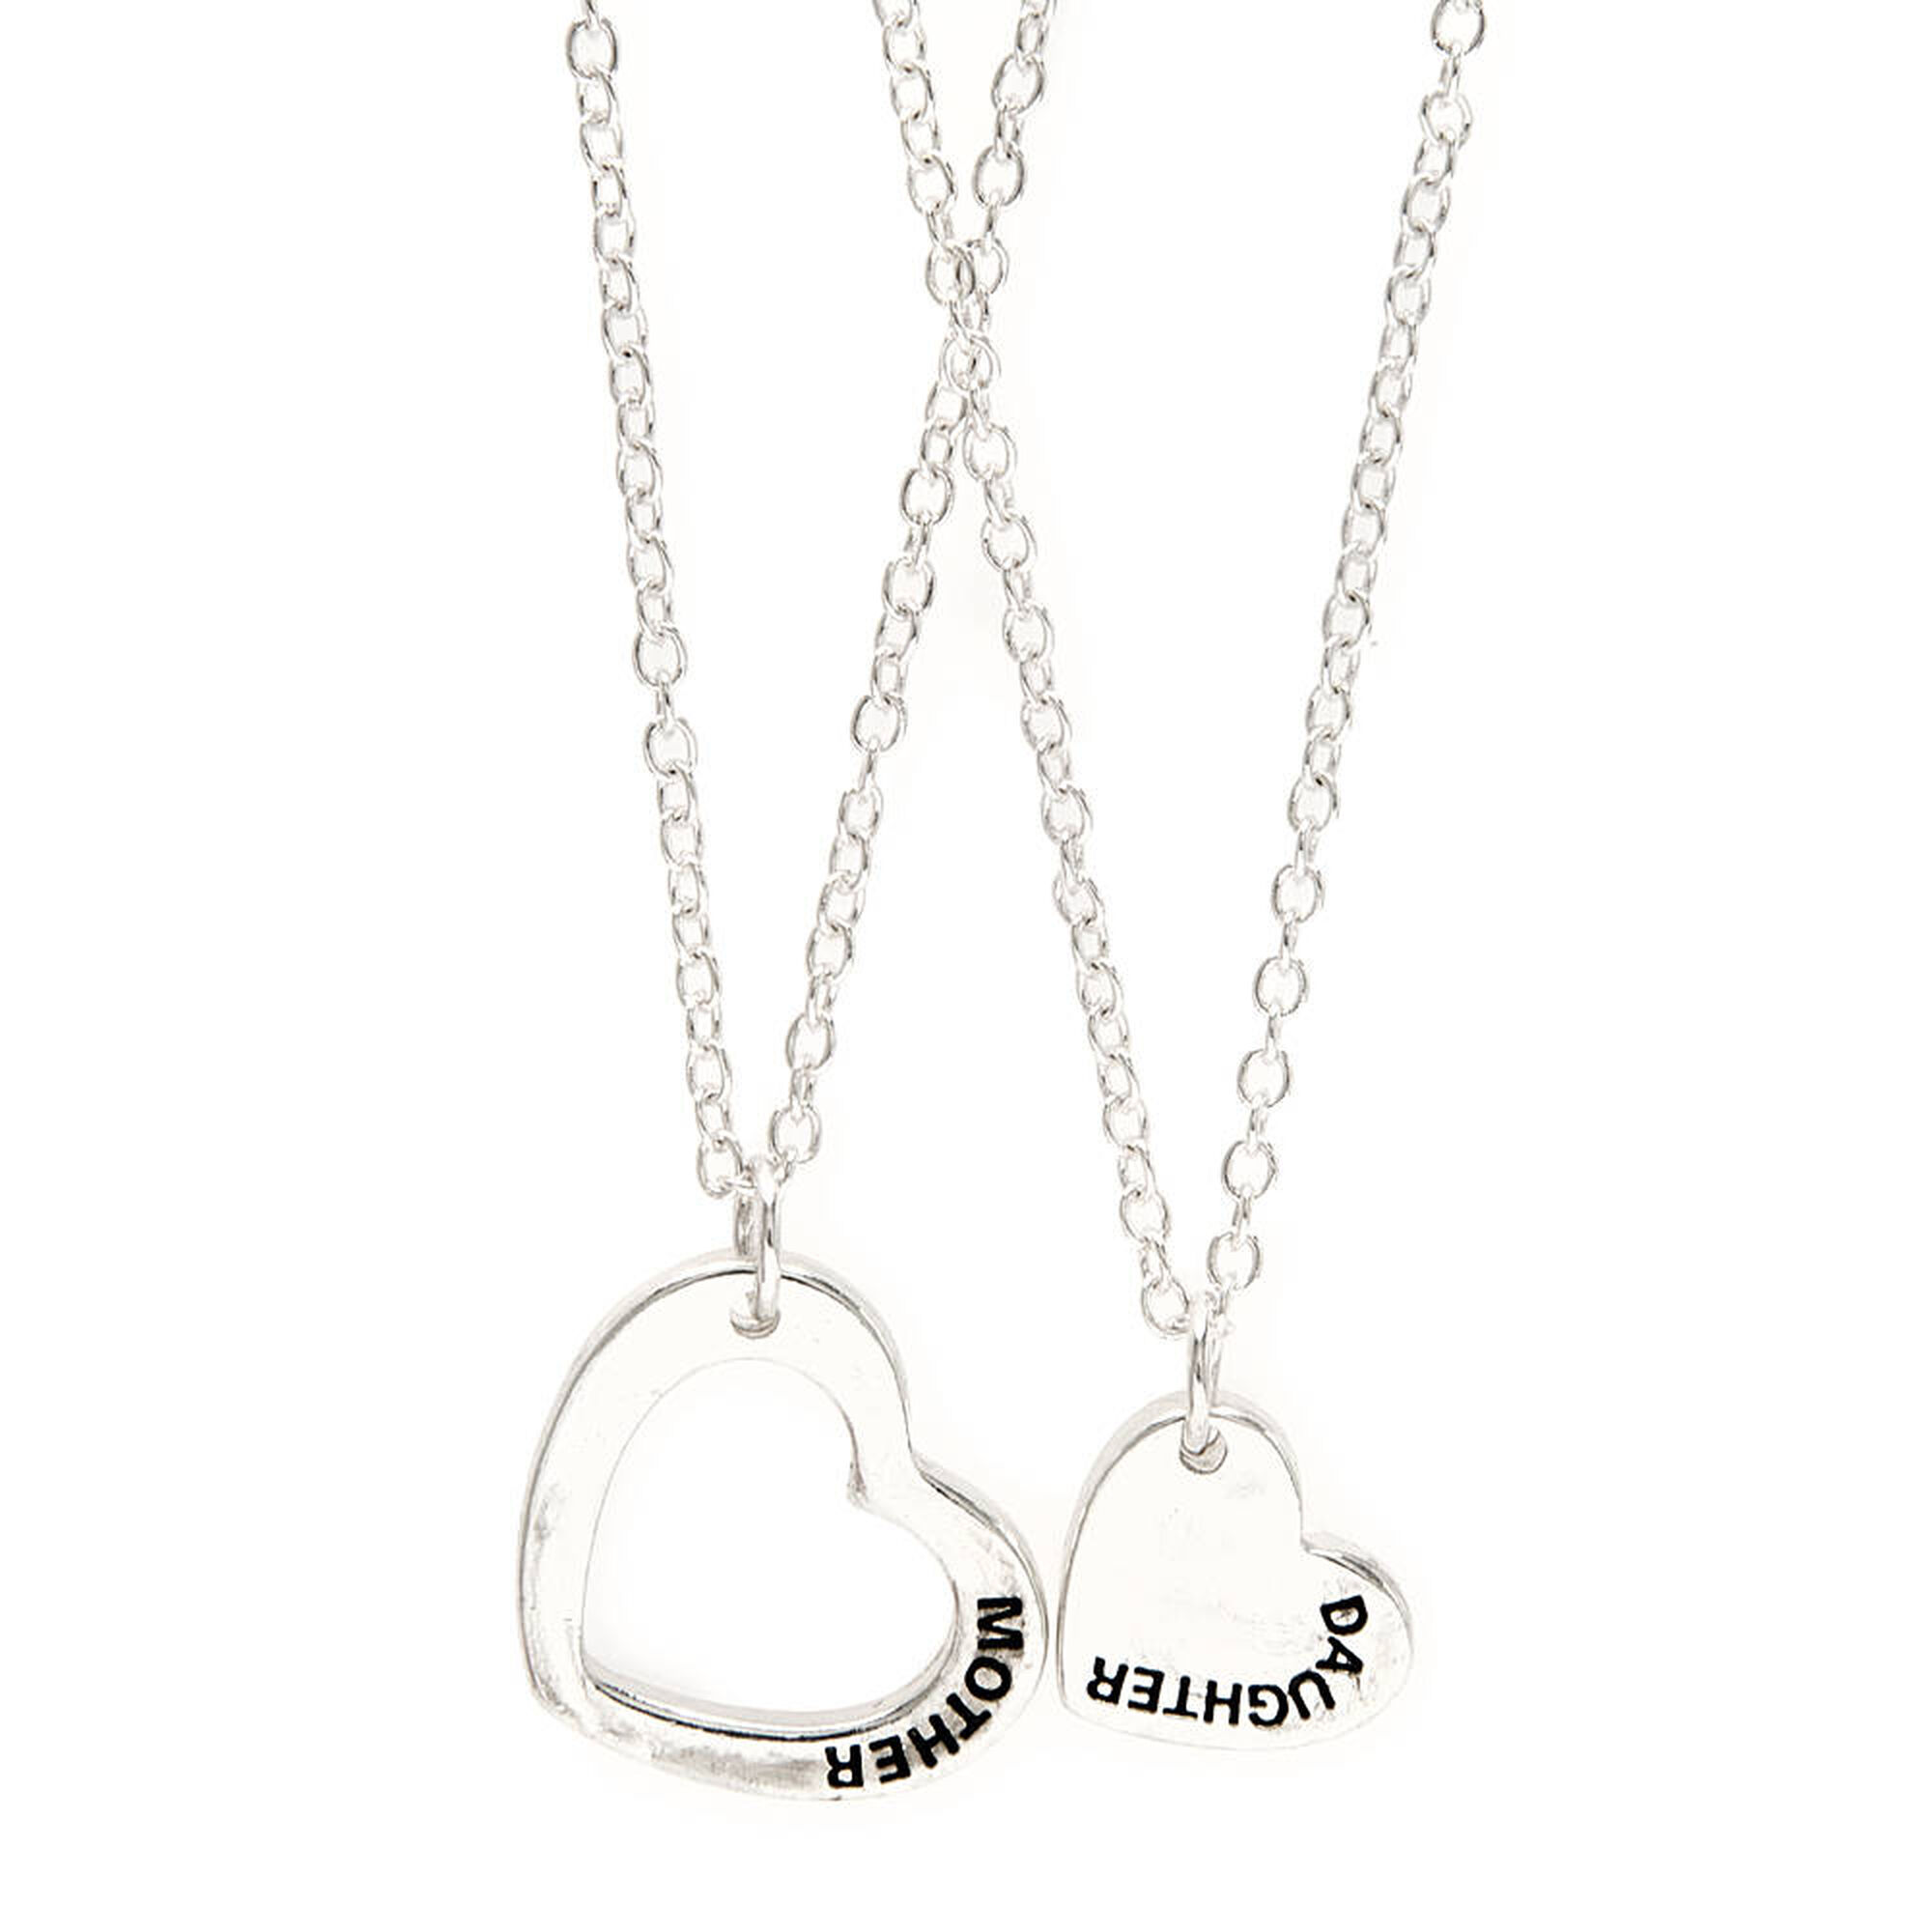 Mother daughter heart pendant necklaces claires us mother daughter heart pendant necklaces aloadofball Images